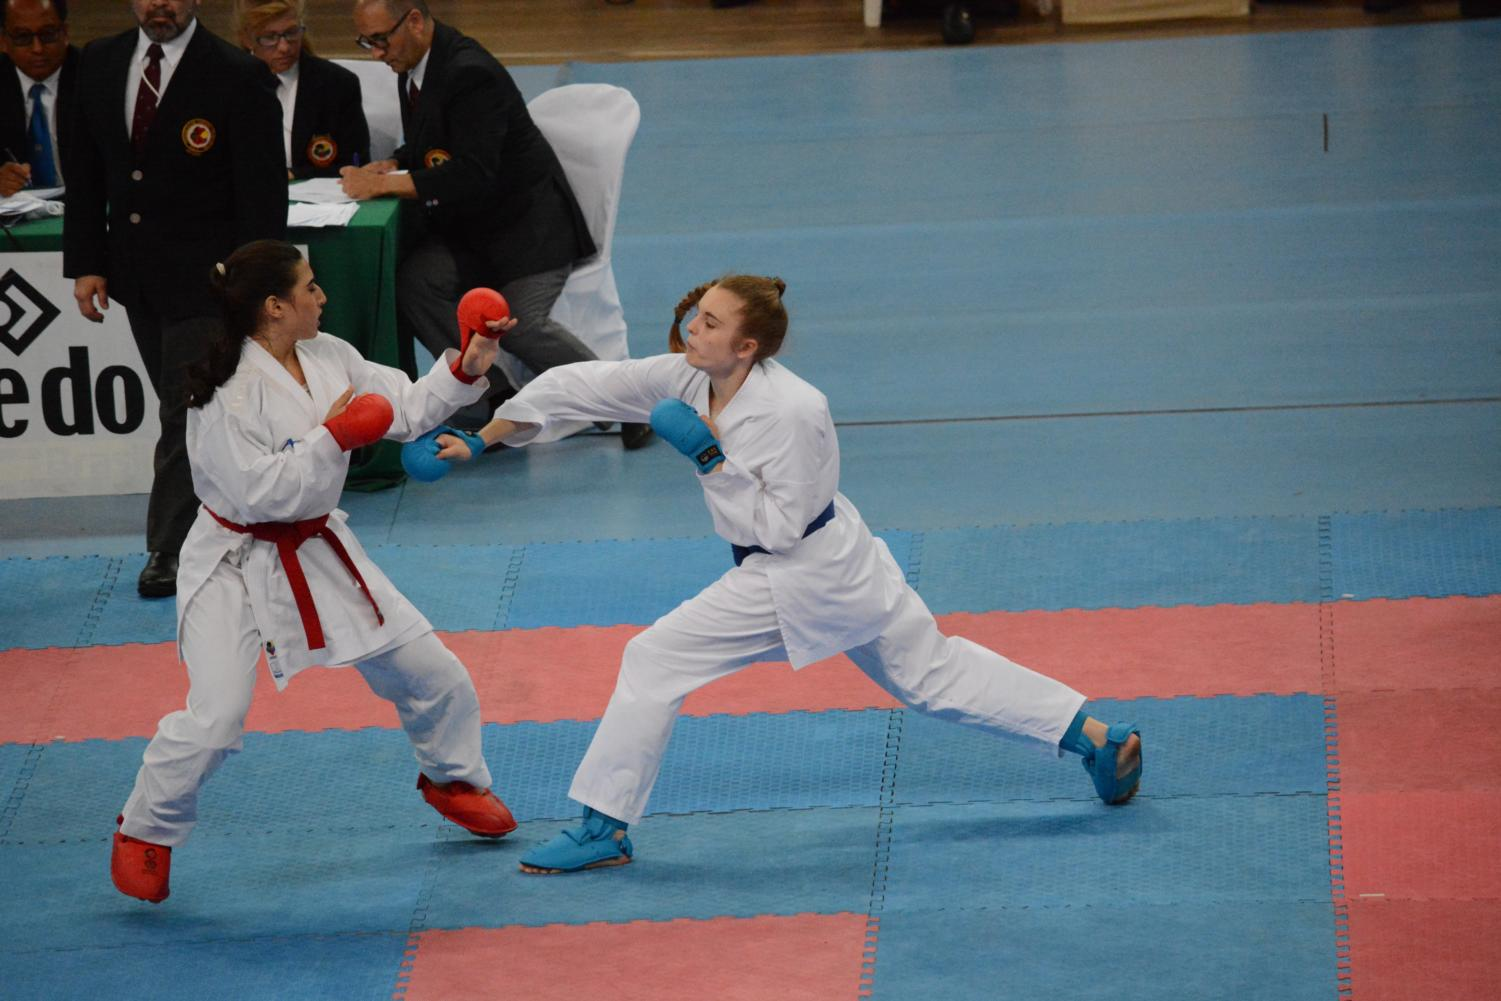 Magdalena (right) competes at the Pan American championships in Brazil in August 2018.